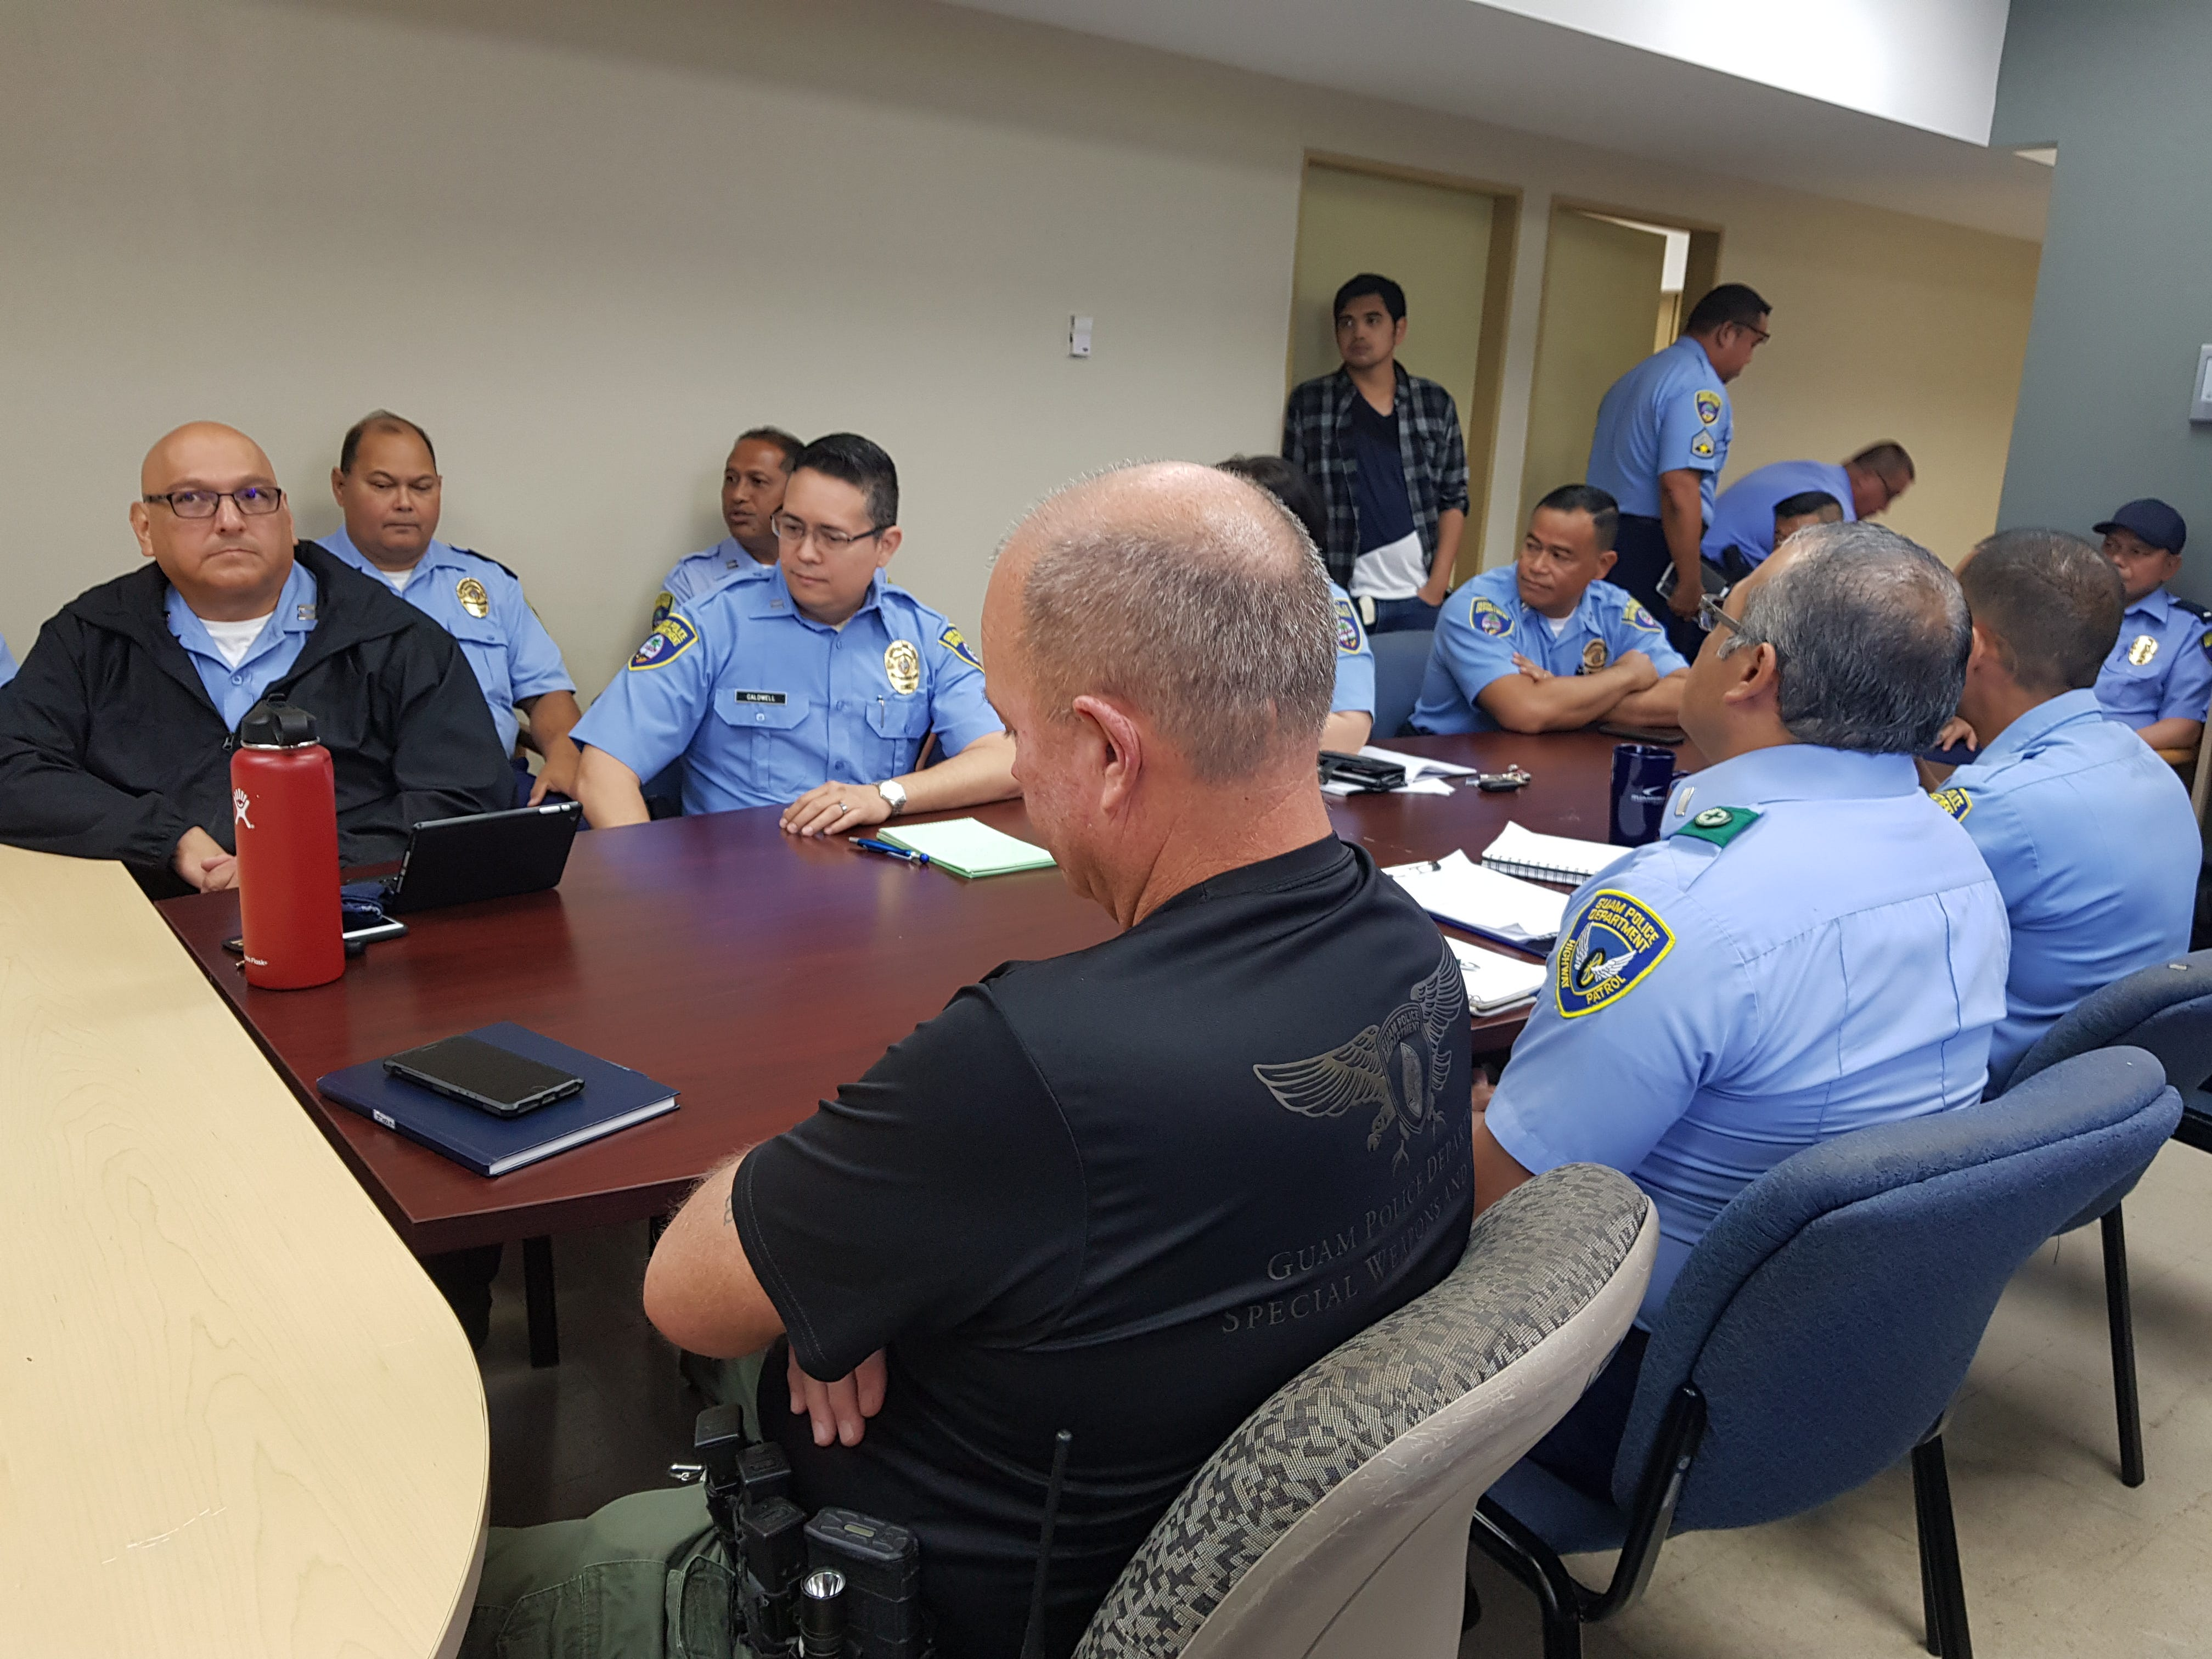 Guam Police Department leadership meet with Gov. Lou Leon Guerrero and Lt. Gov. Josh Tenorio during a visit of the GPD headquarters in Tiyan on Jan. 17, 2019.